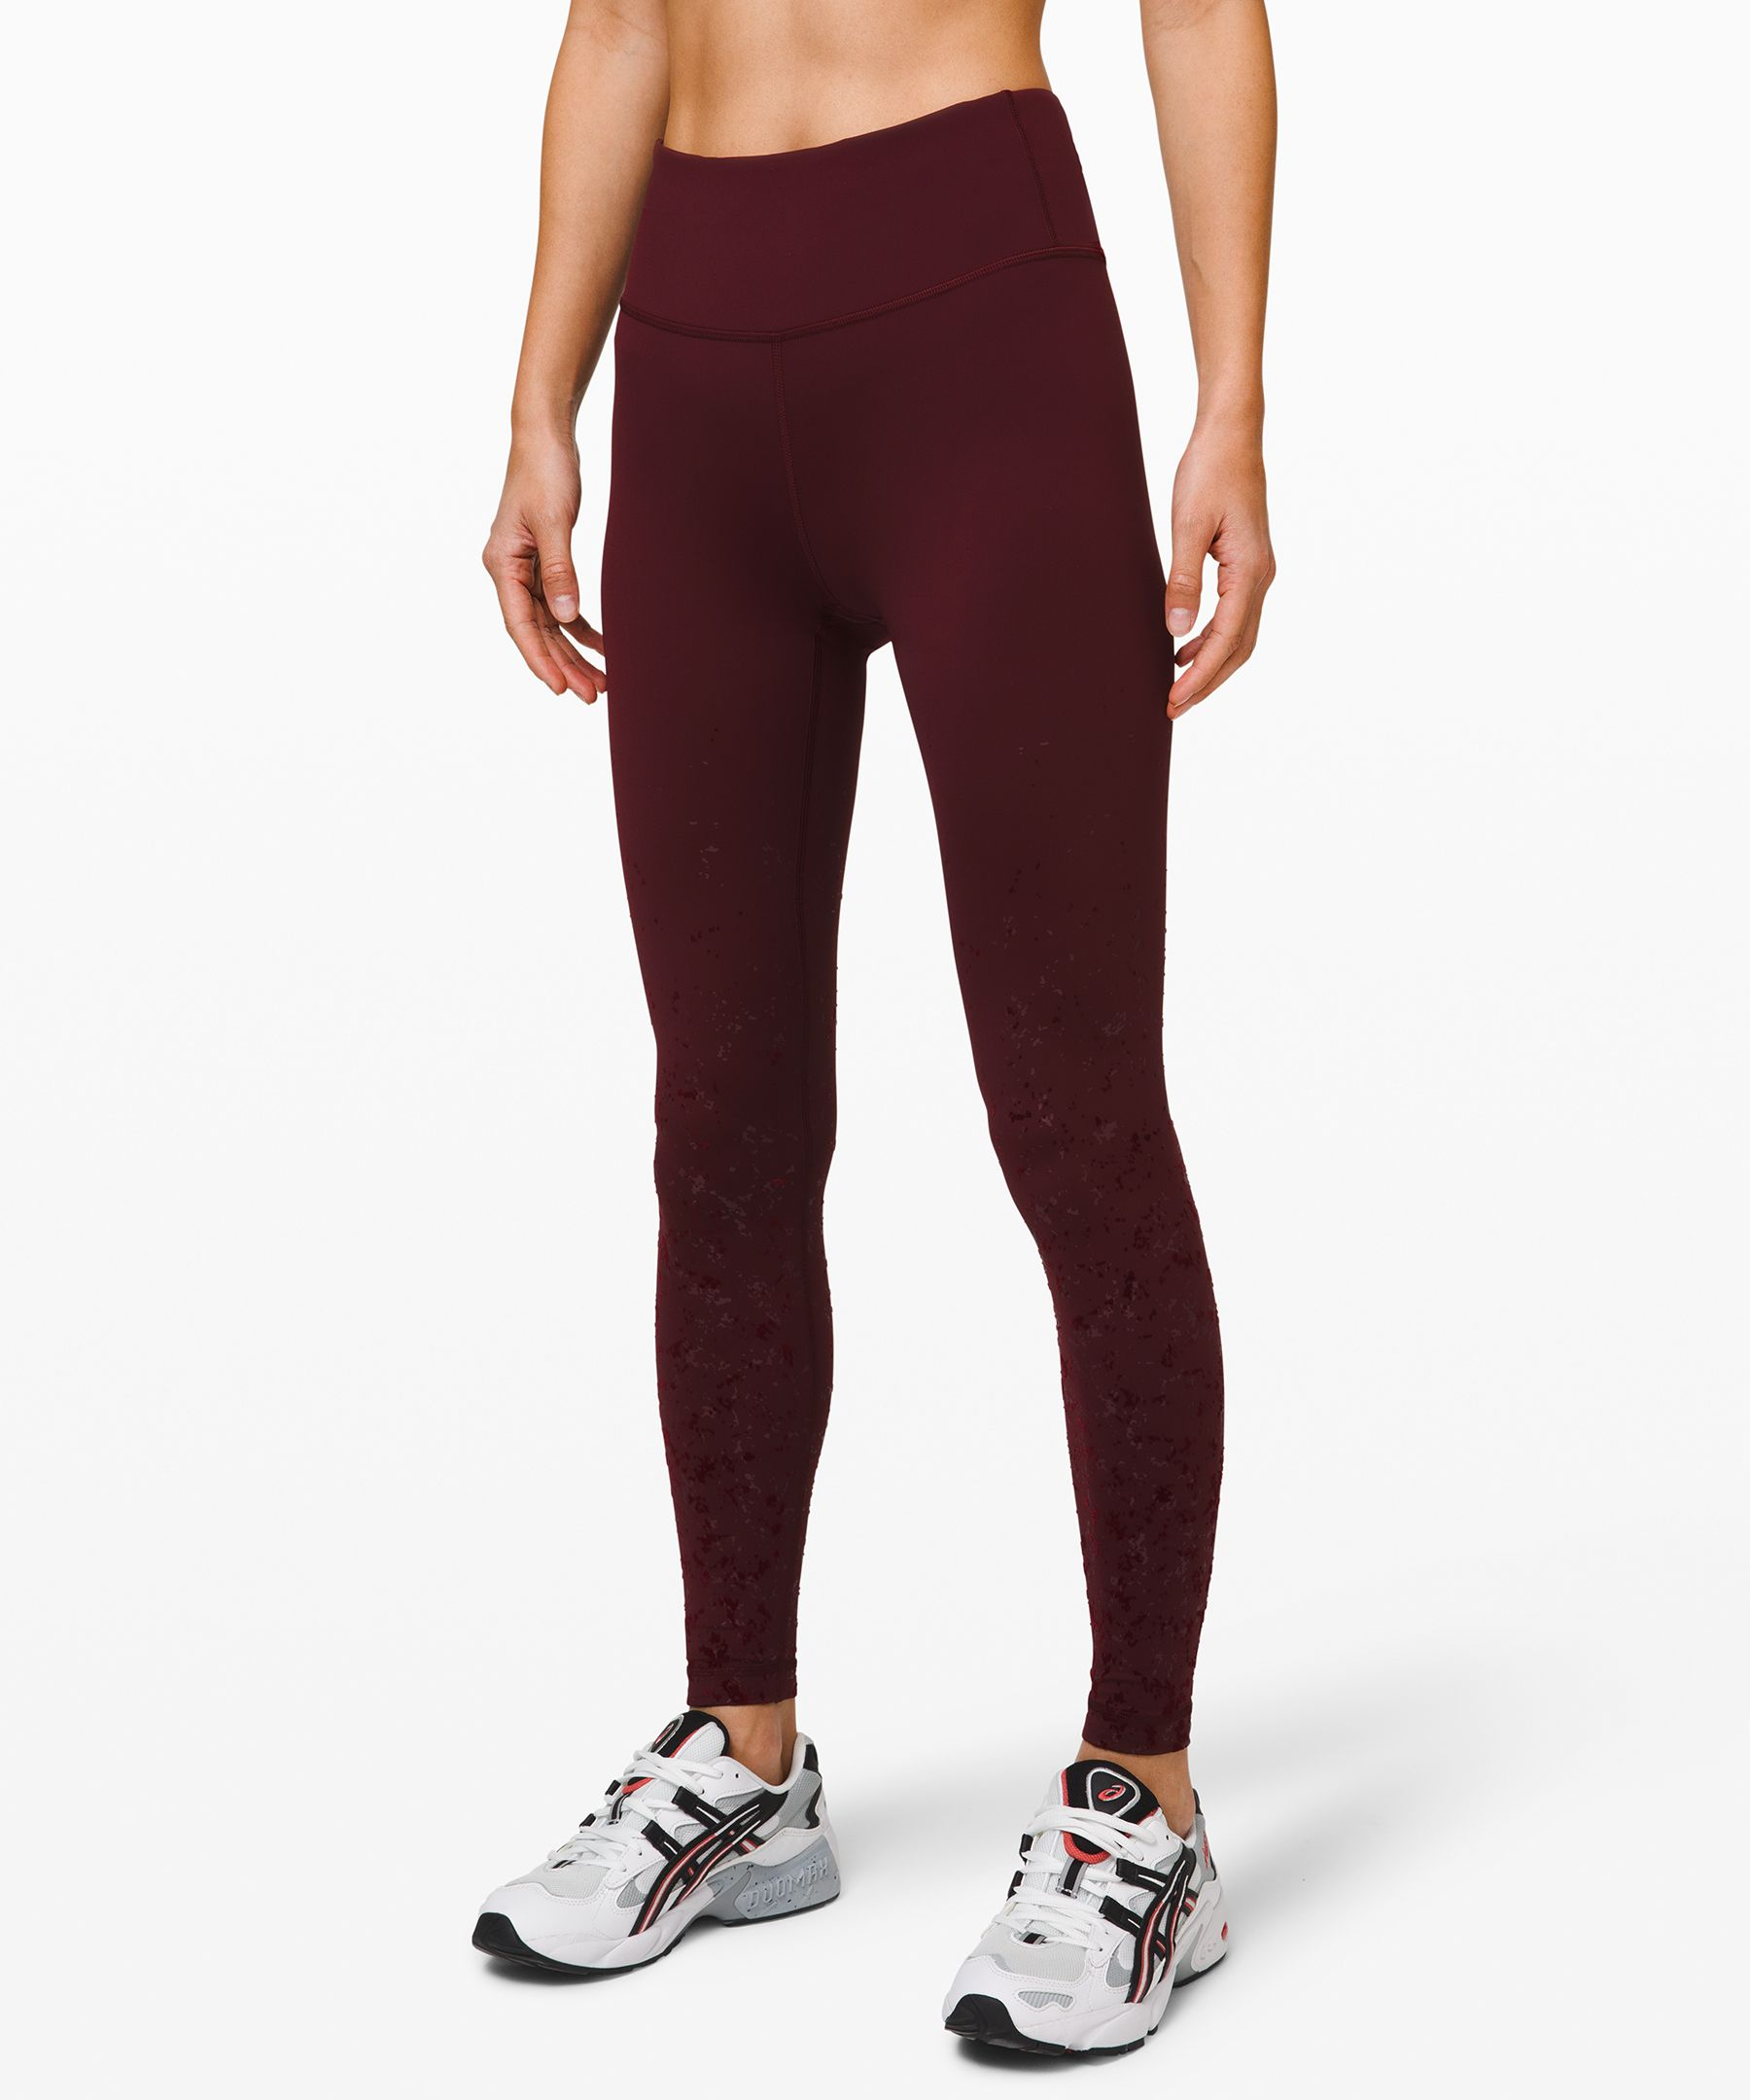 Speed Wunder Mid-Rise Tight 28 *Speckle Shine